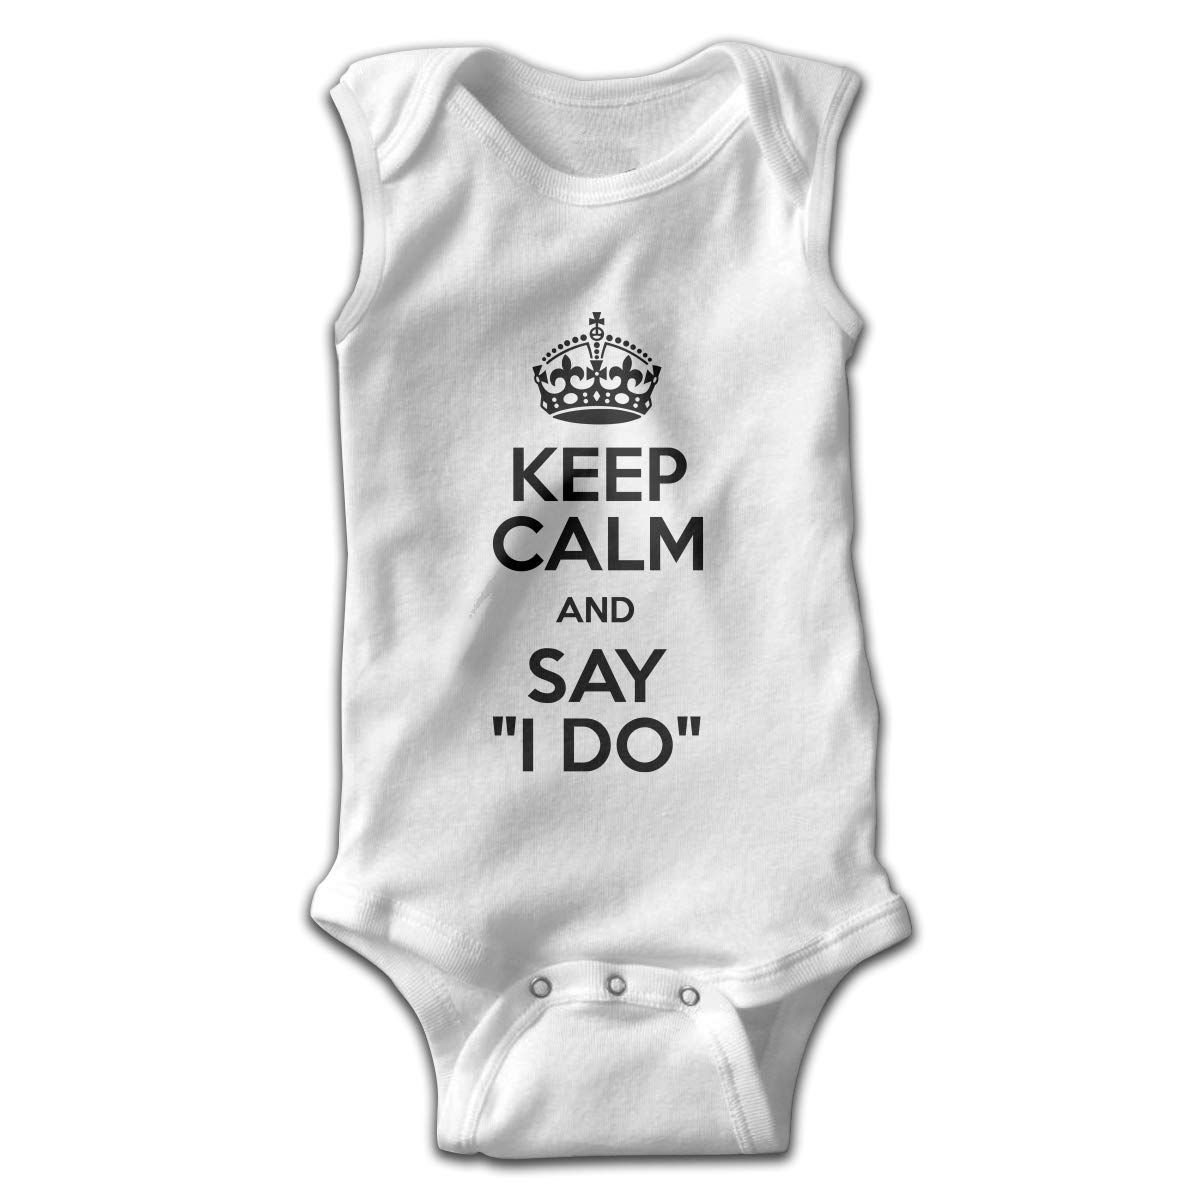 Efbj Toddler Baby Girls Rompers Sleeveless Cotton Jumpsuit,Keep Calm and Say I Do Outfit Autumn Pajamas